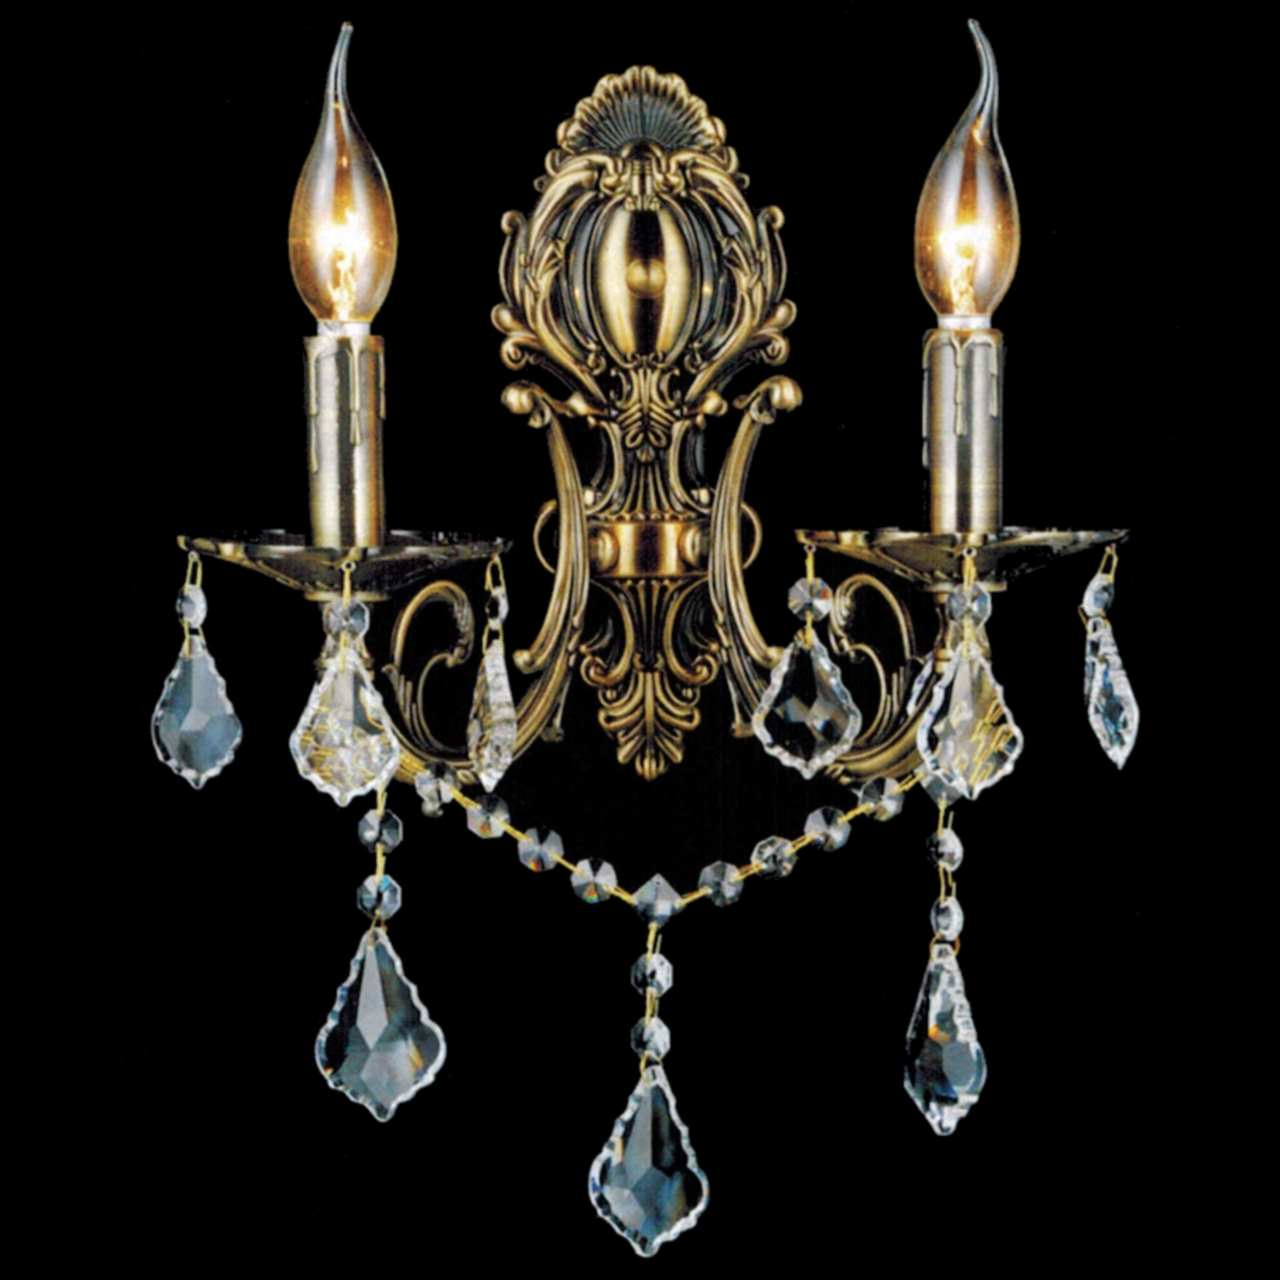 Candle Wall Sconces Antique : Brizzo Lighting Stores. 16